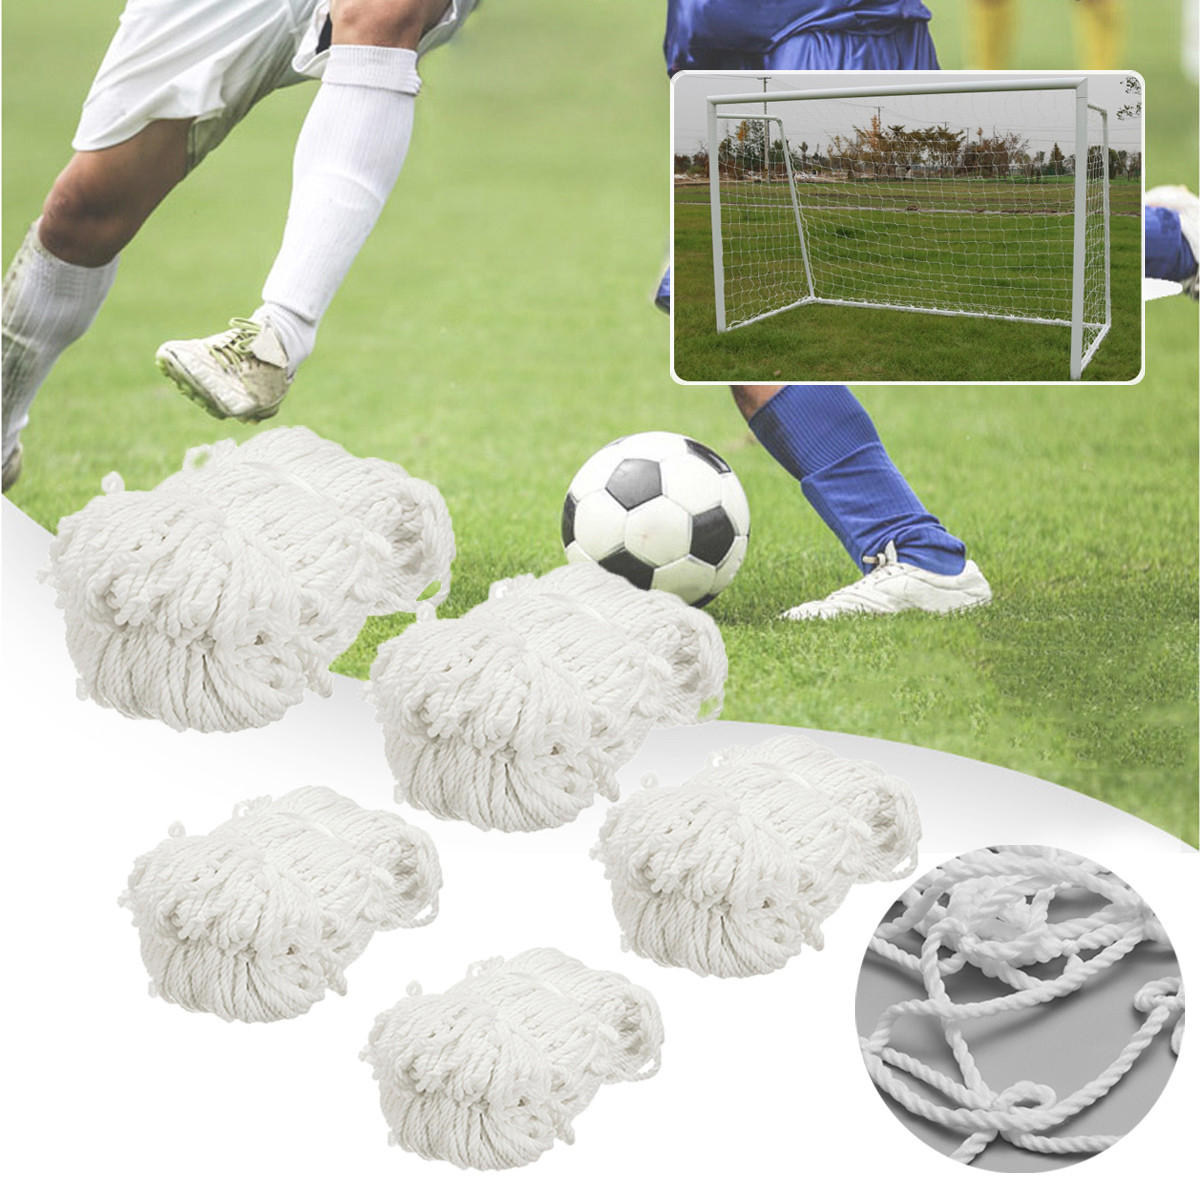 Football Soccer Goal Post Net Training Match Replace Outdoor Full Size Adult Kid - 1